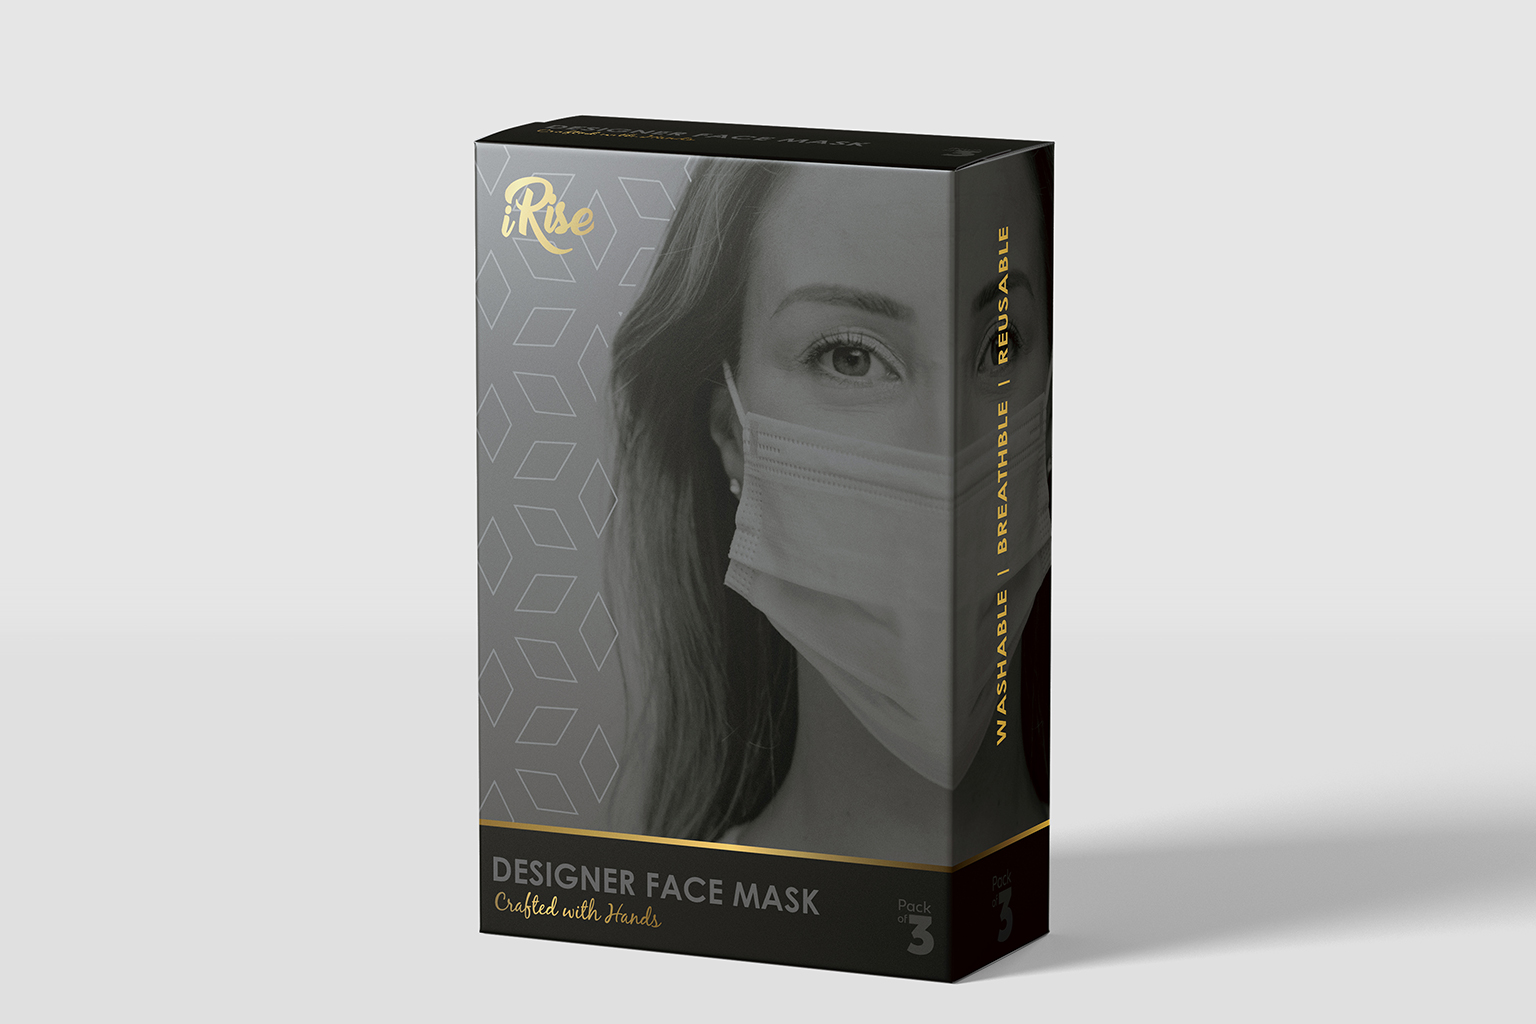 N95 Mask Packaging Design